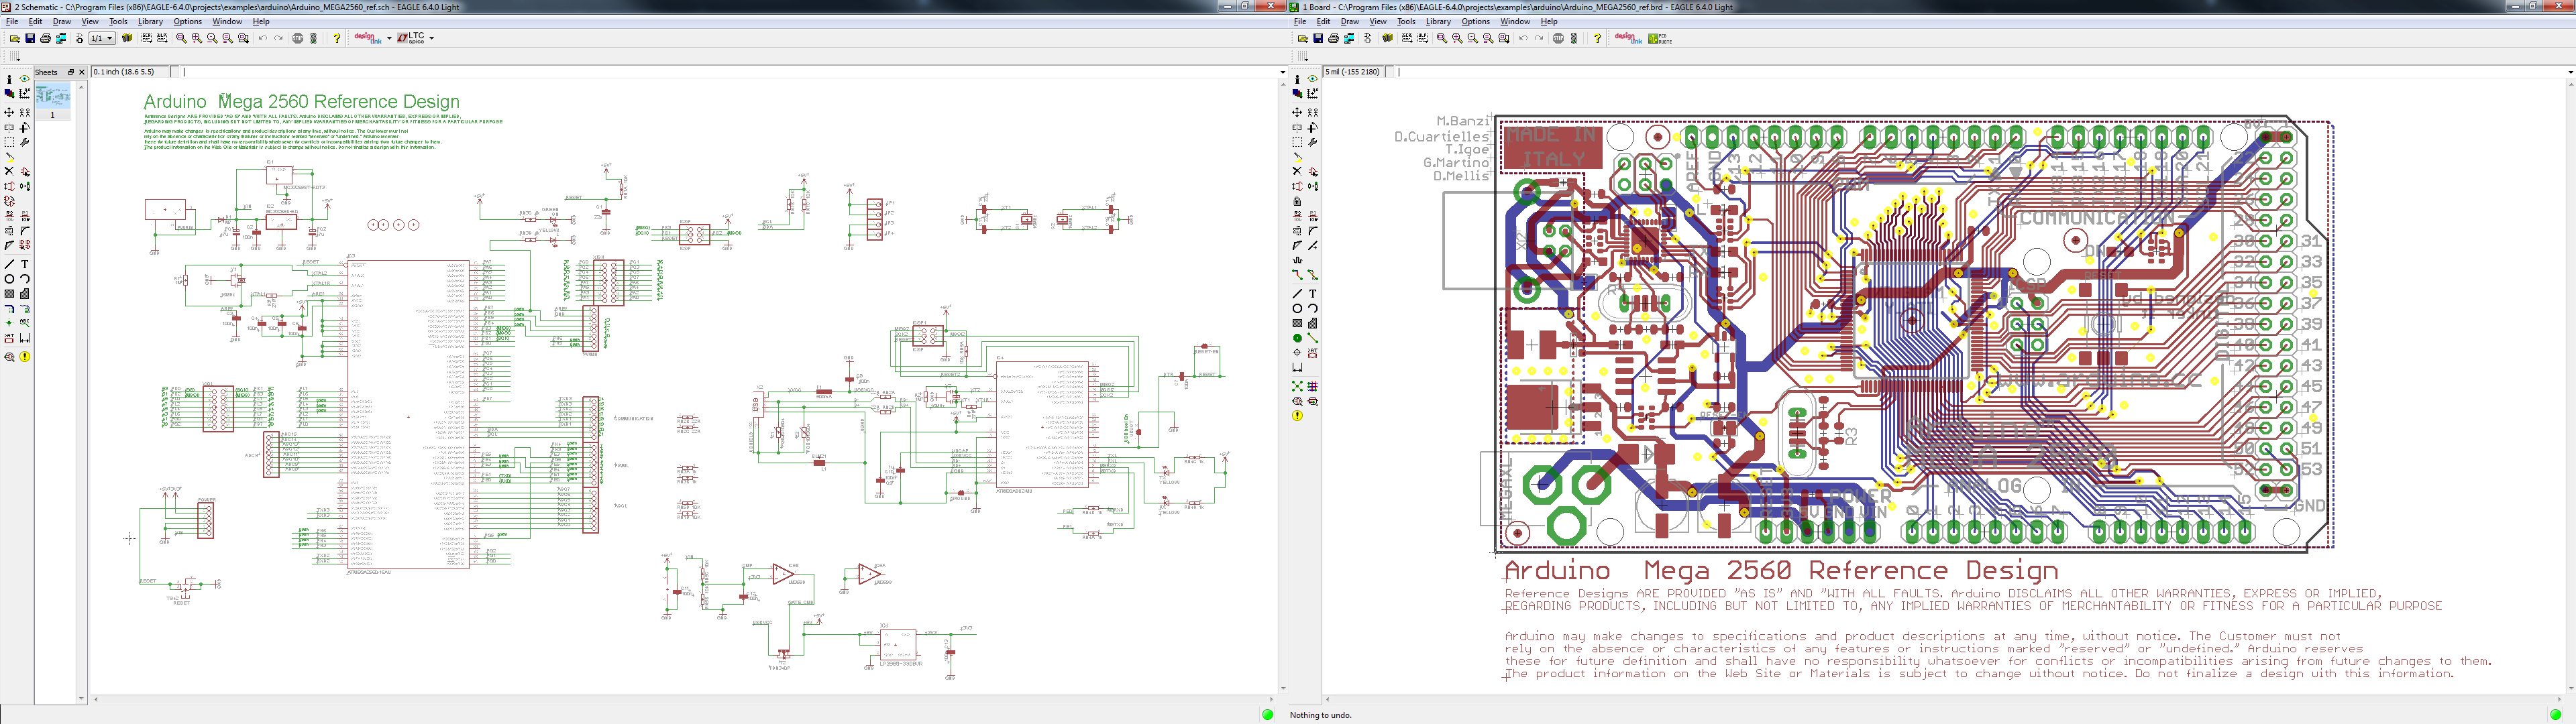 How To Install And Setup Eagle Electric Circuit Design Group Picture Image By Tag Board Schematic View Both Open